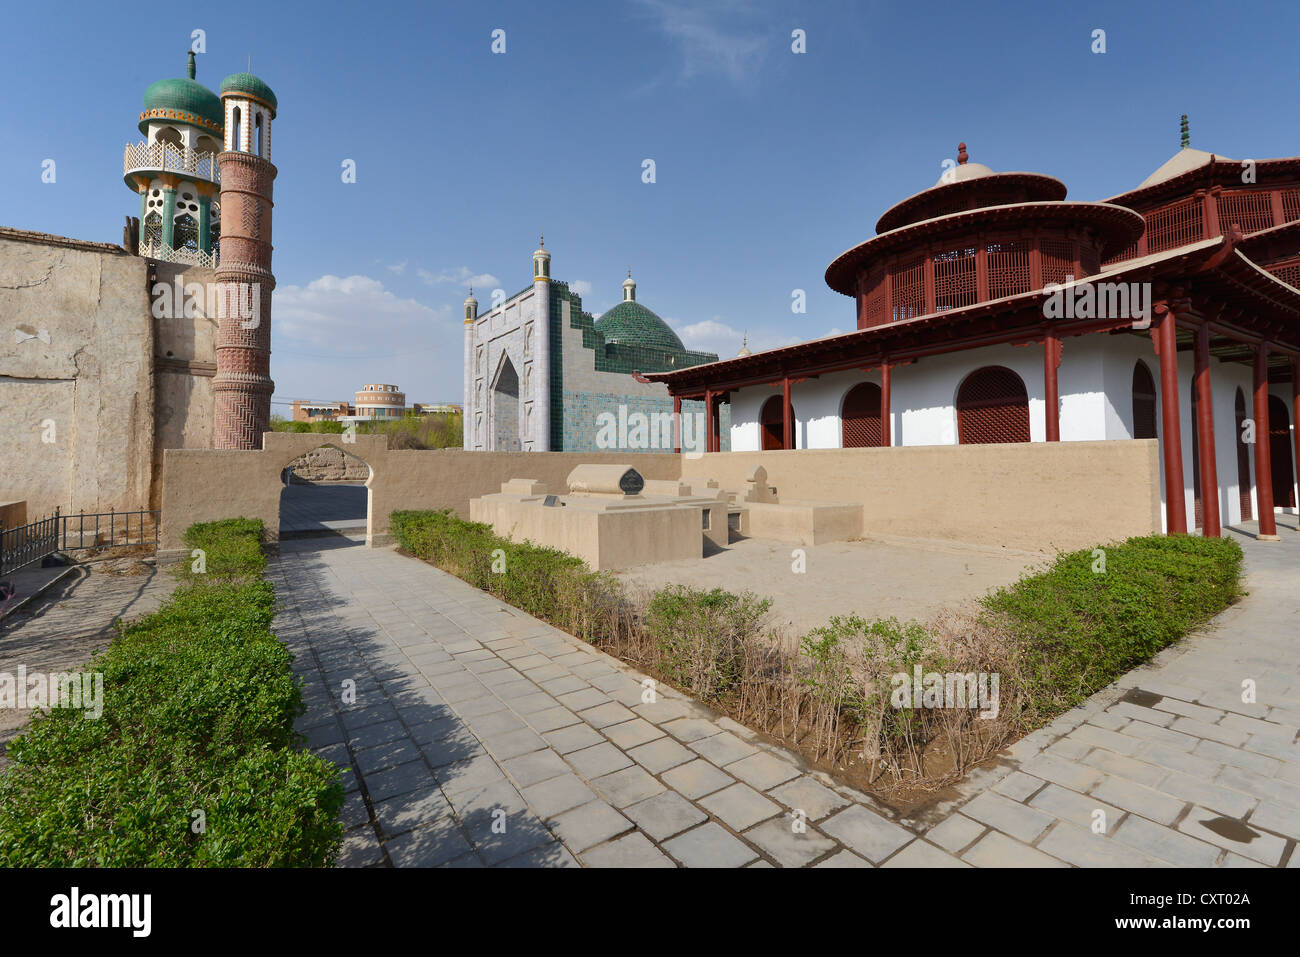 Historical Silk Road, tomb of a king, mausoleum or the Hami Uyghur Royal Family, Uighur, Kumul, Xinjiang, China, - Stock Image